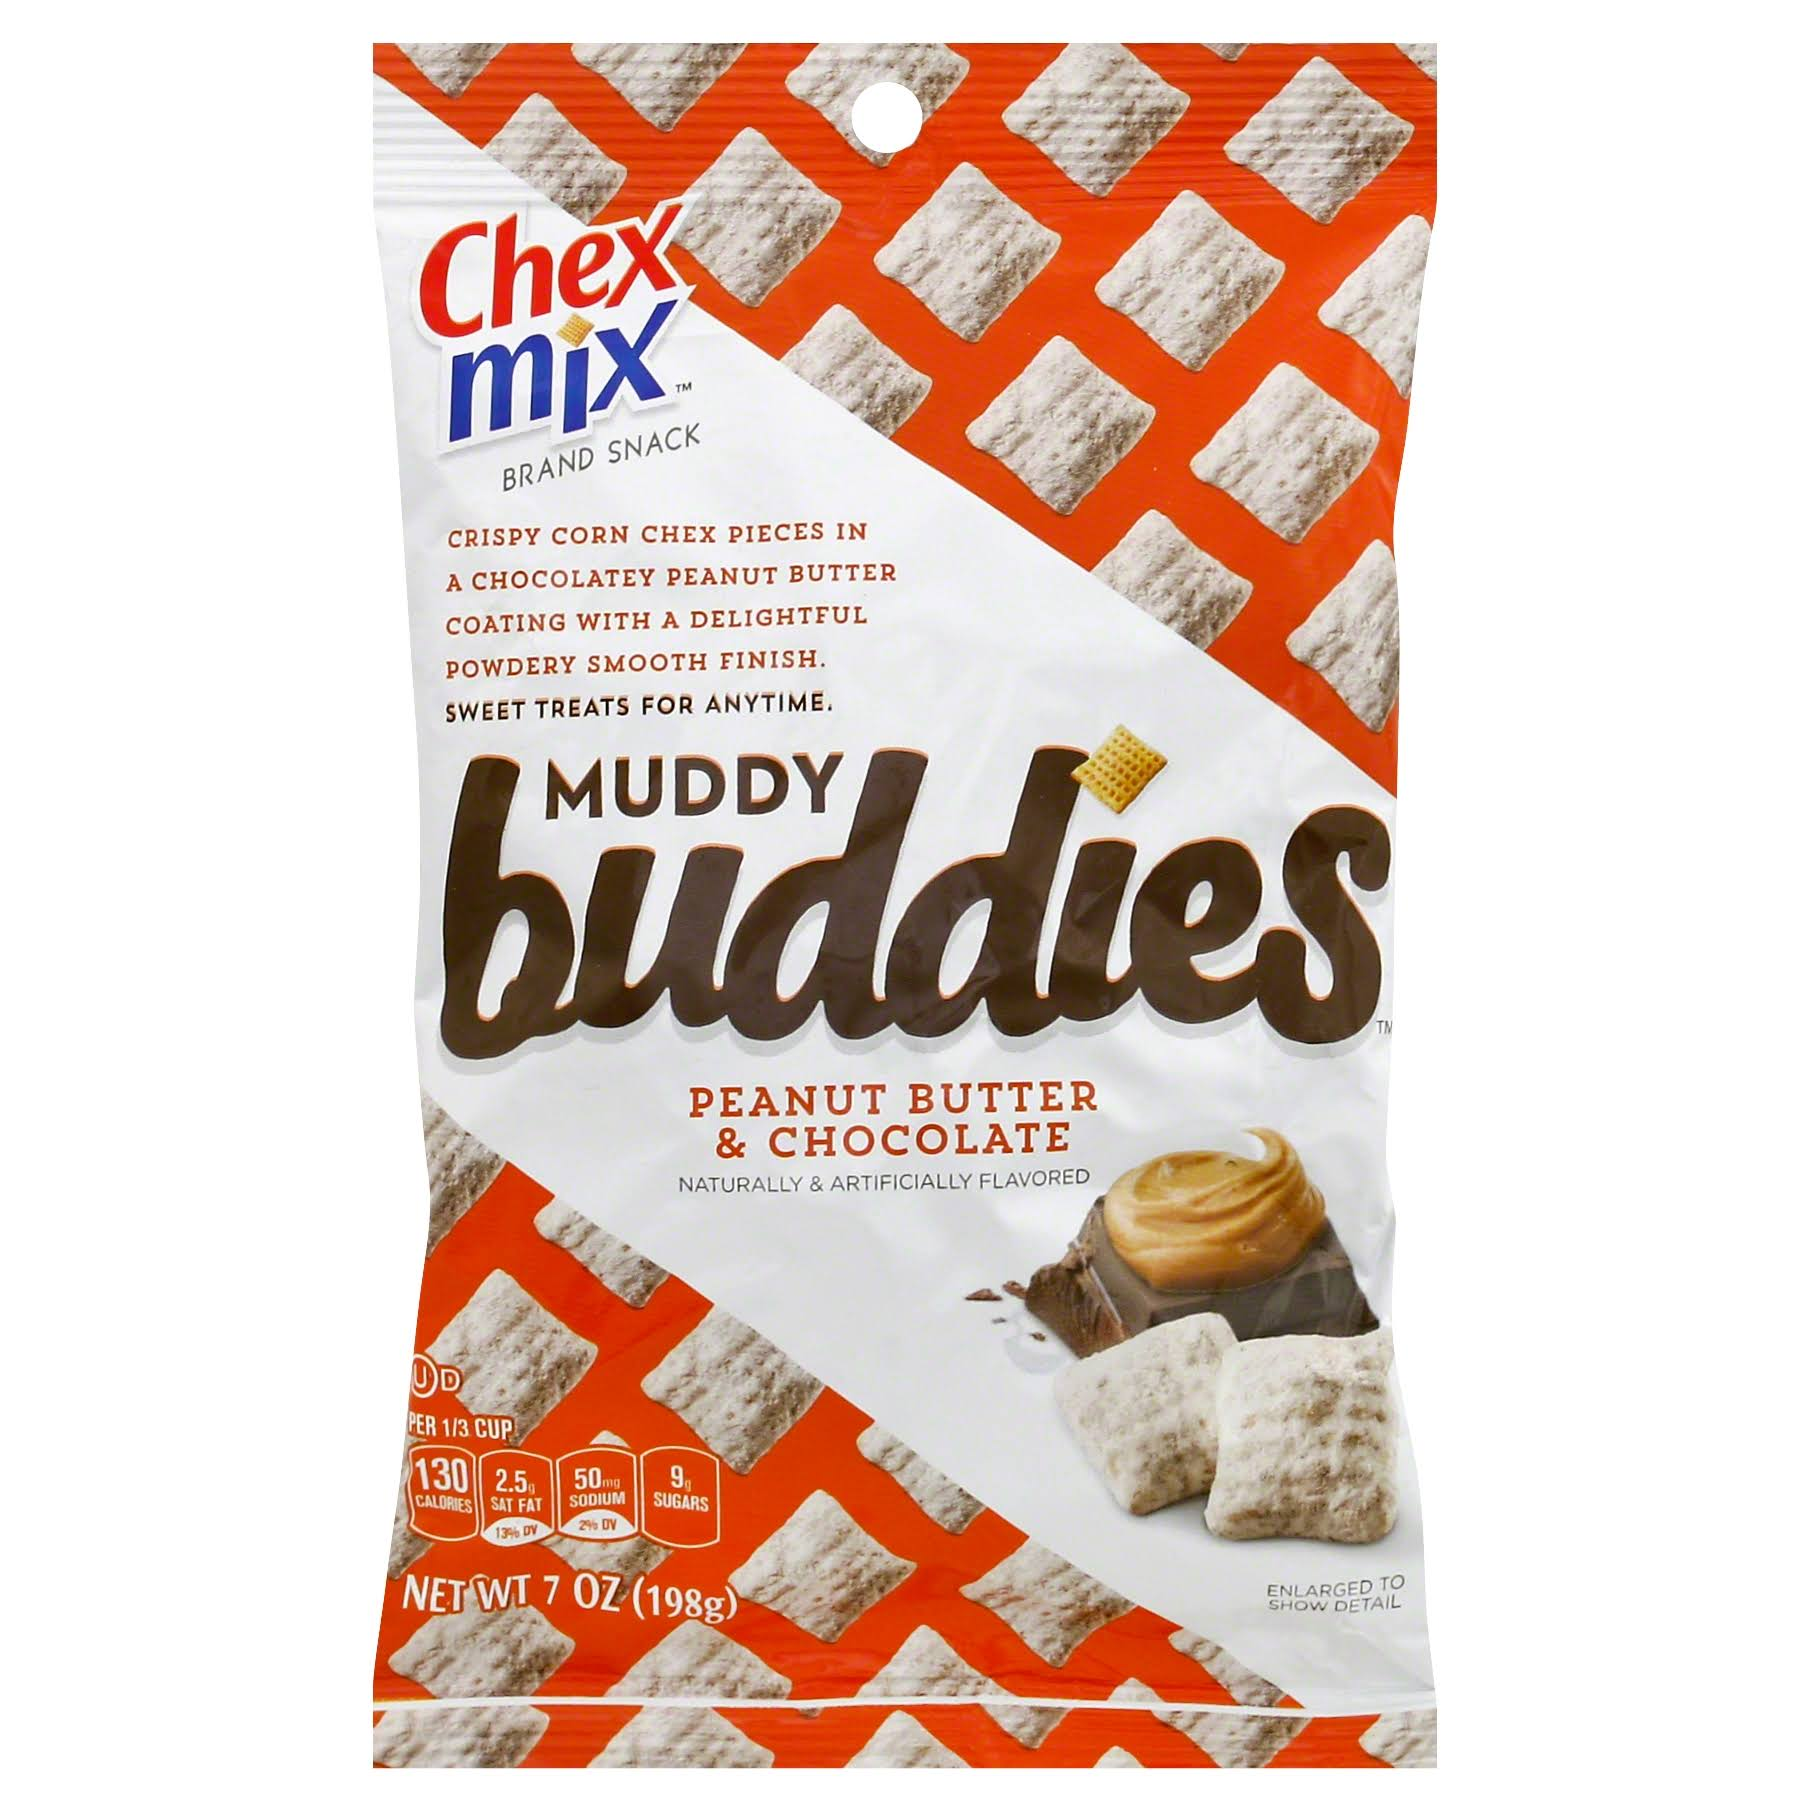 Honey Nut Chex Muddy Buddies Snack Mix - Peanut Butter and Chocolate, 7ozz